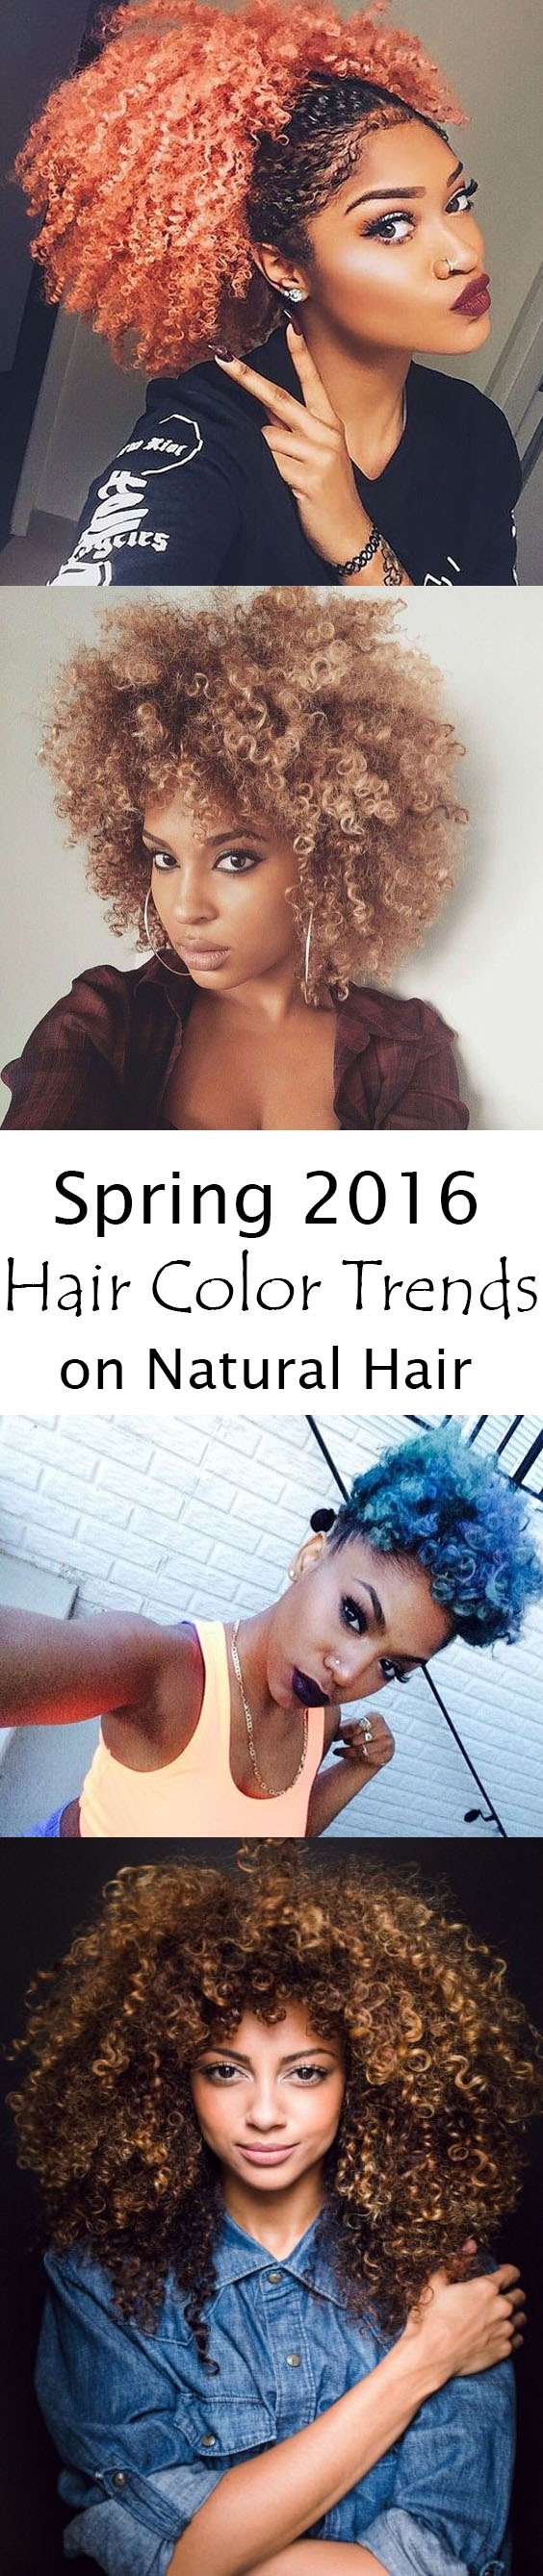 23+ Spring 2016 Hair Color  Pictures